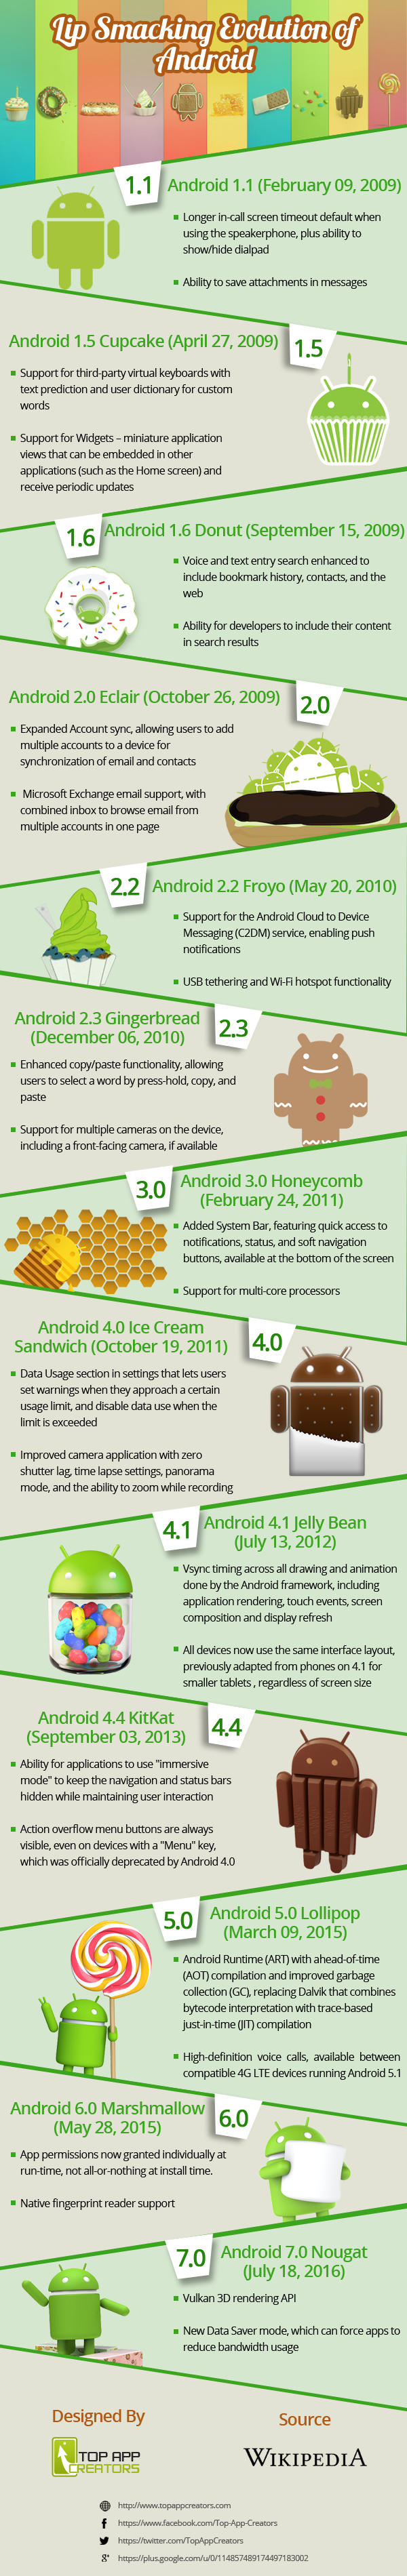 Lip Smacking Evolution of Android